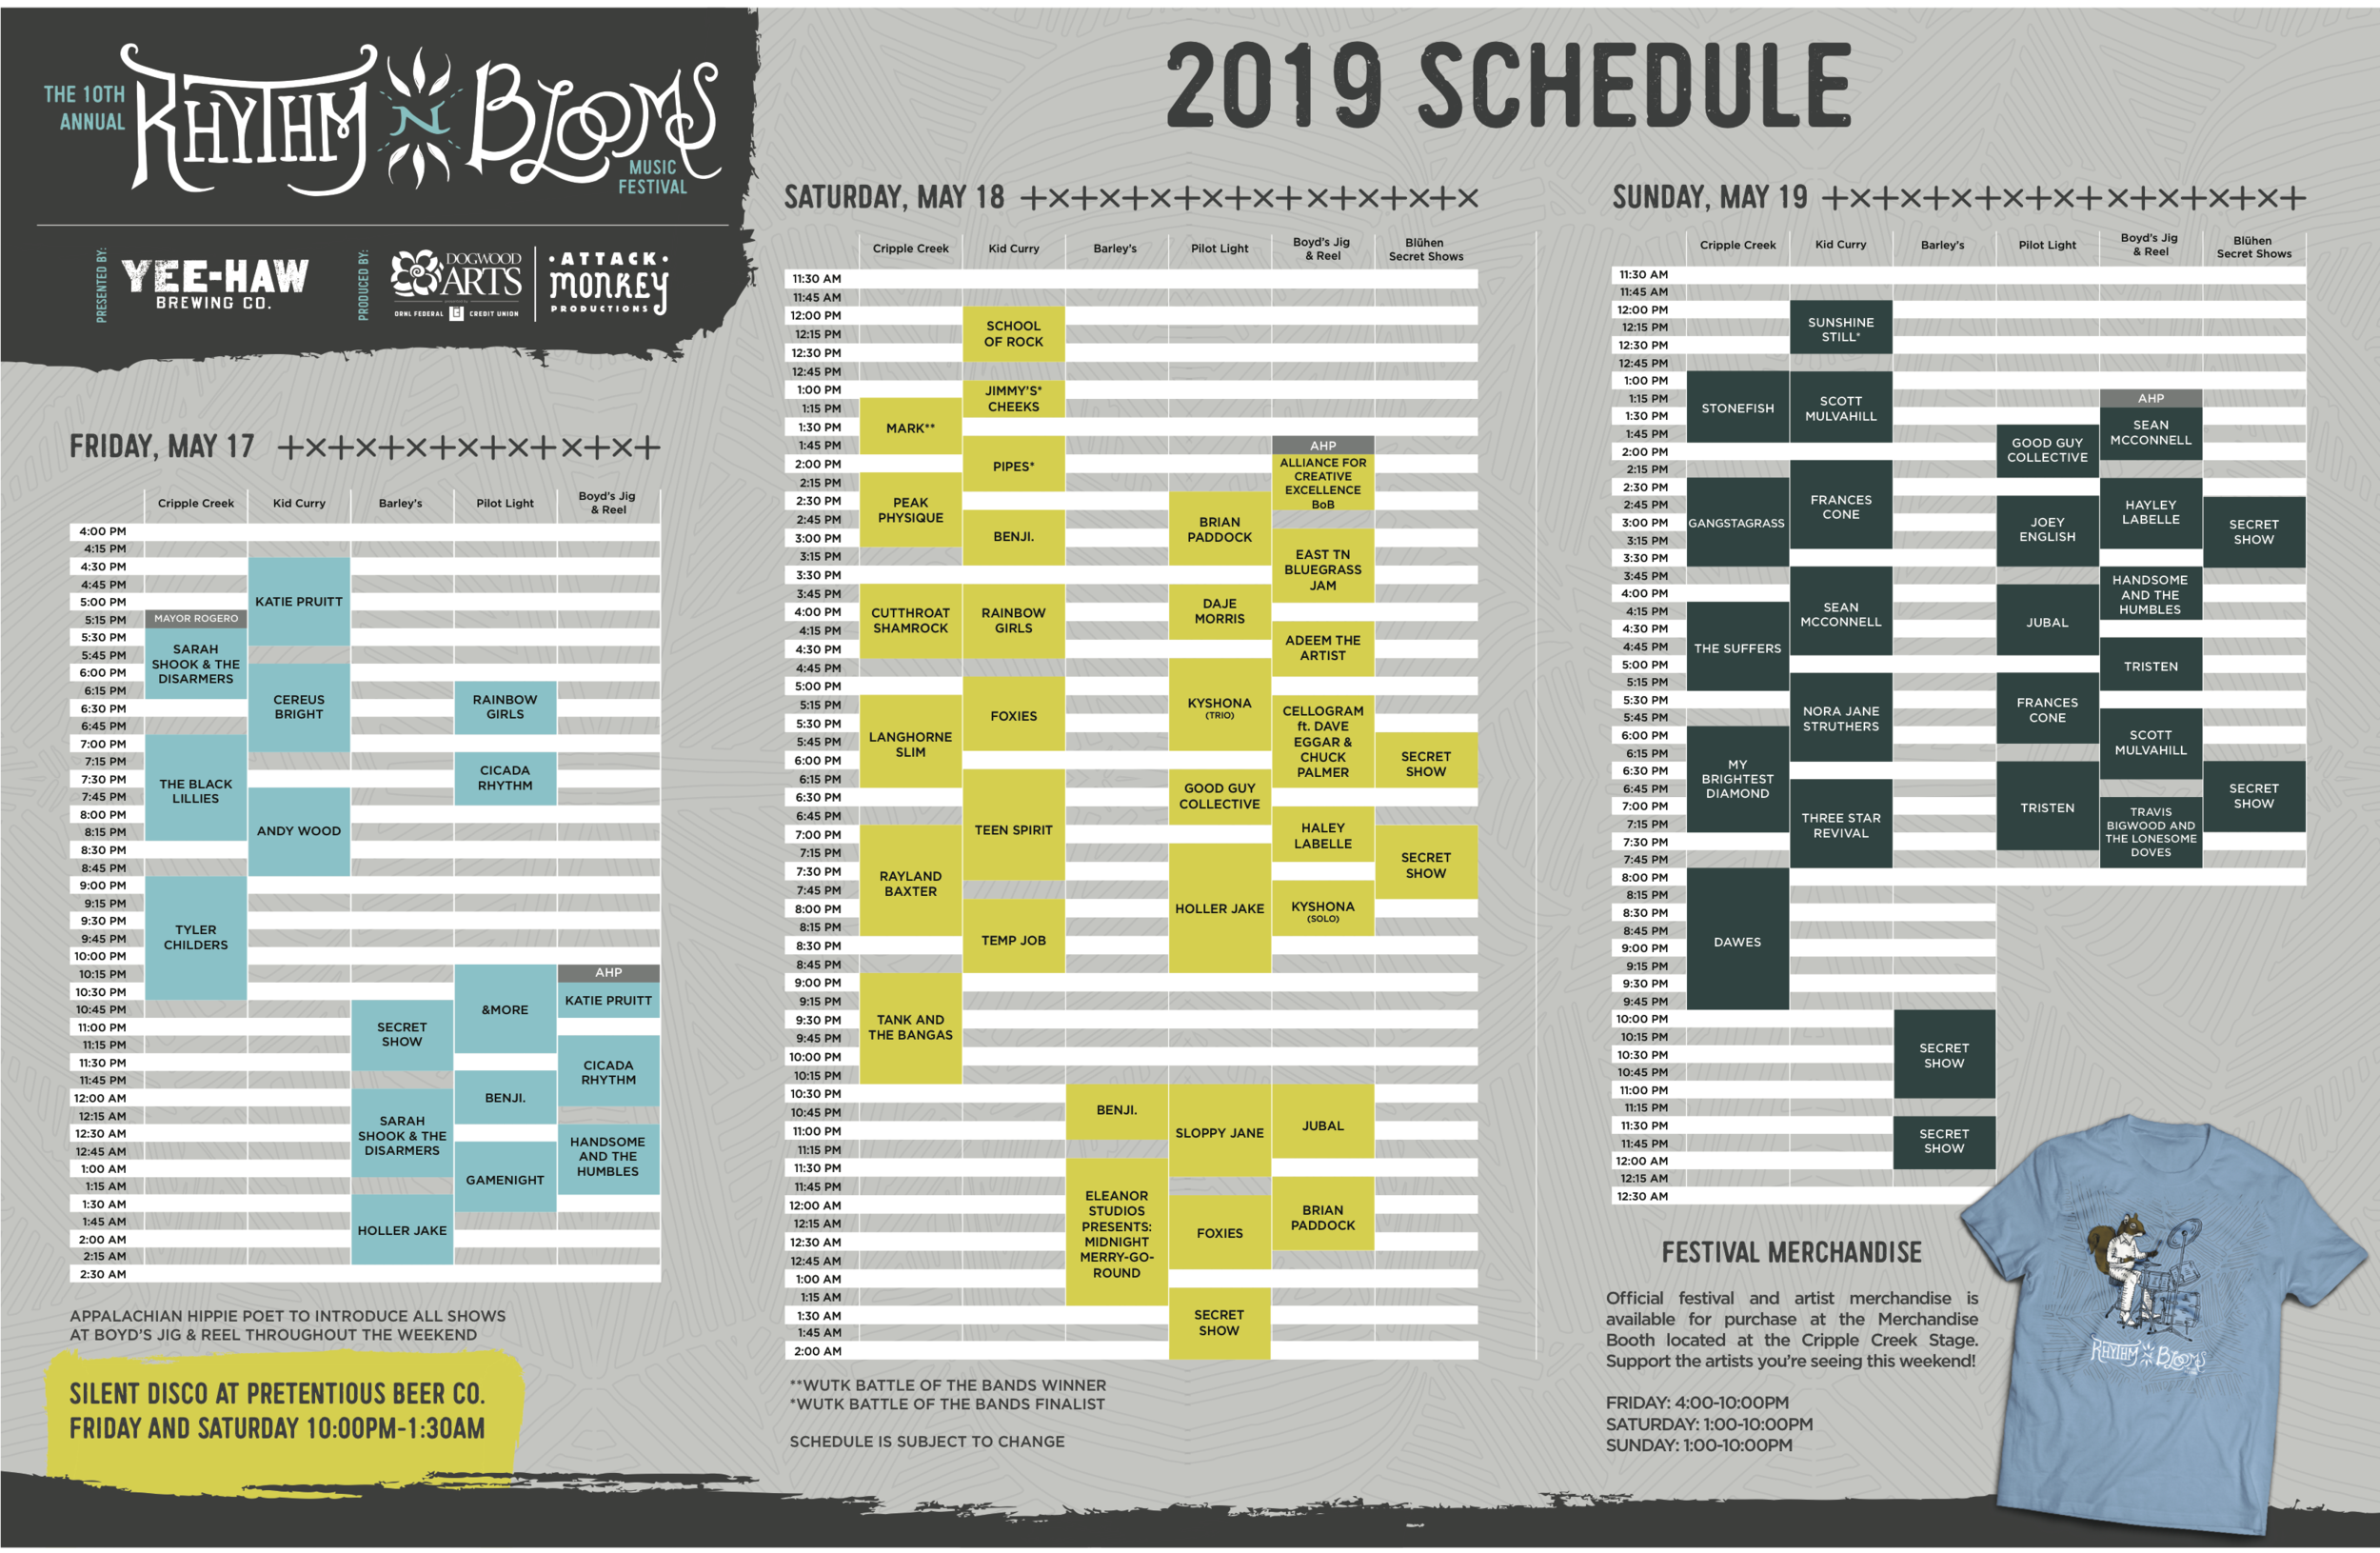 Printable schedule | Click to enlarge